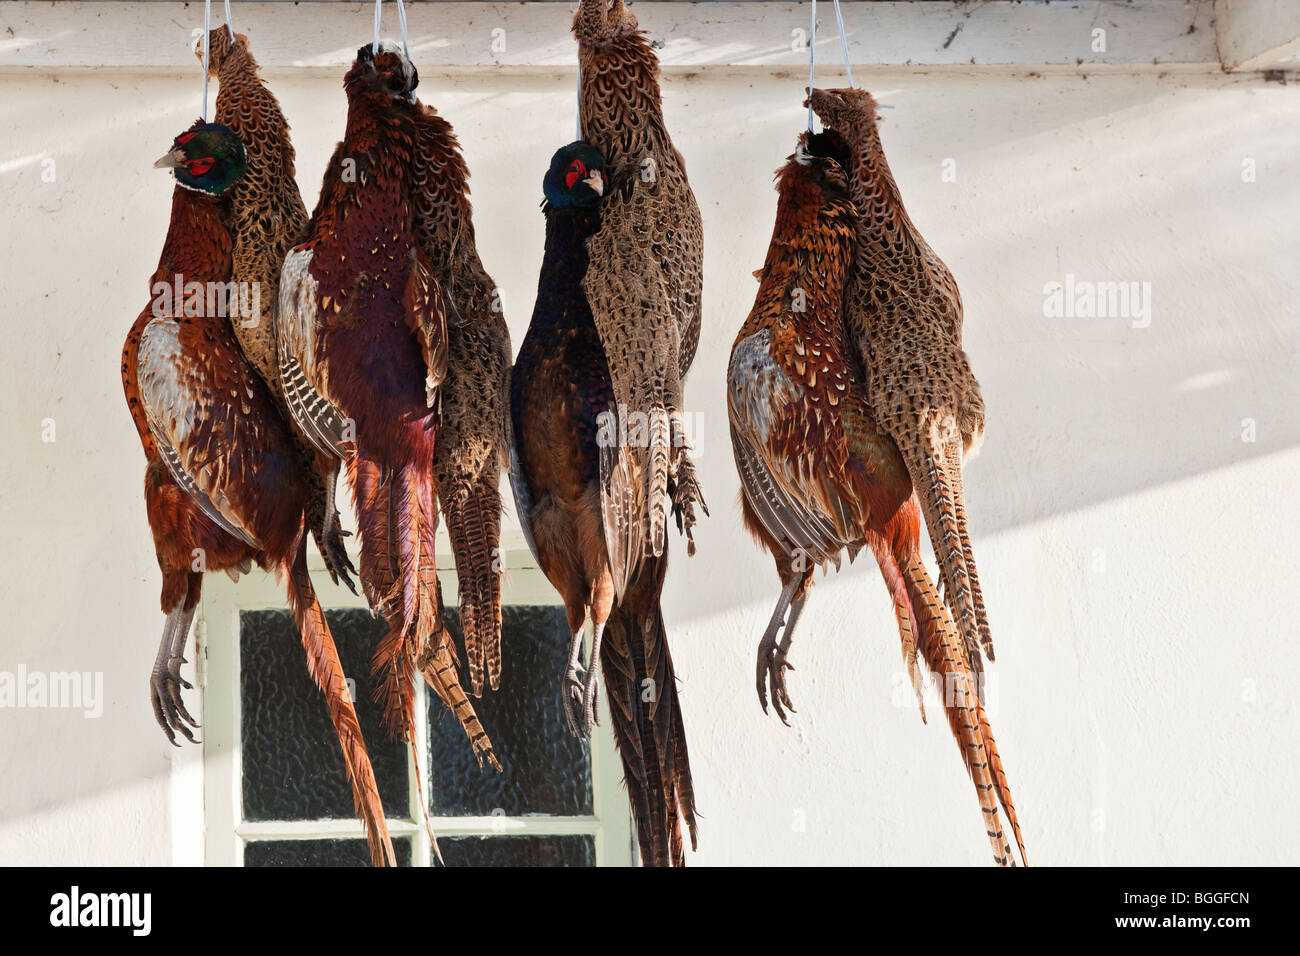 pheasants hanging outside - Stock Image